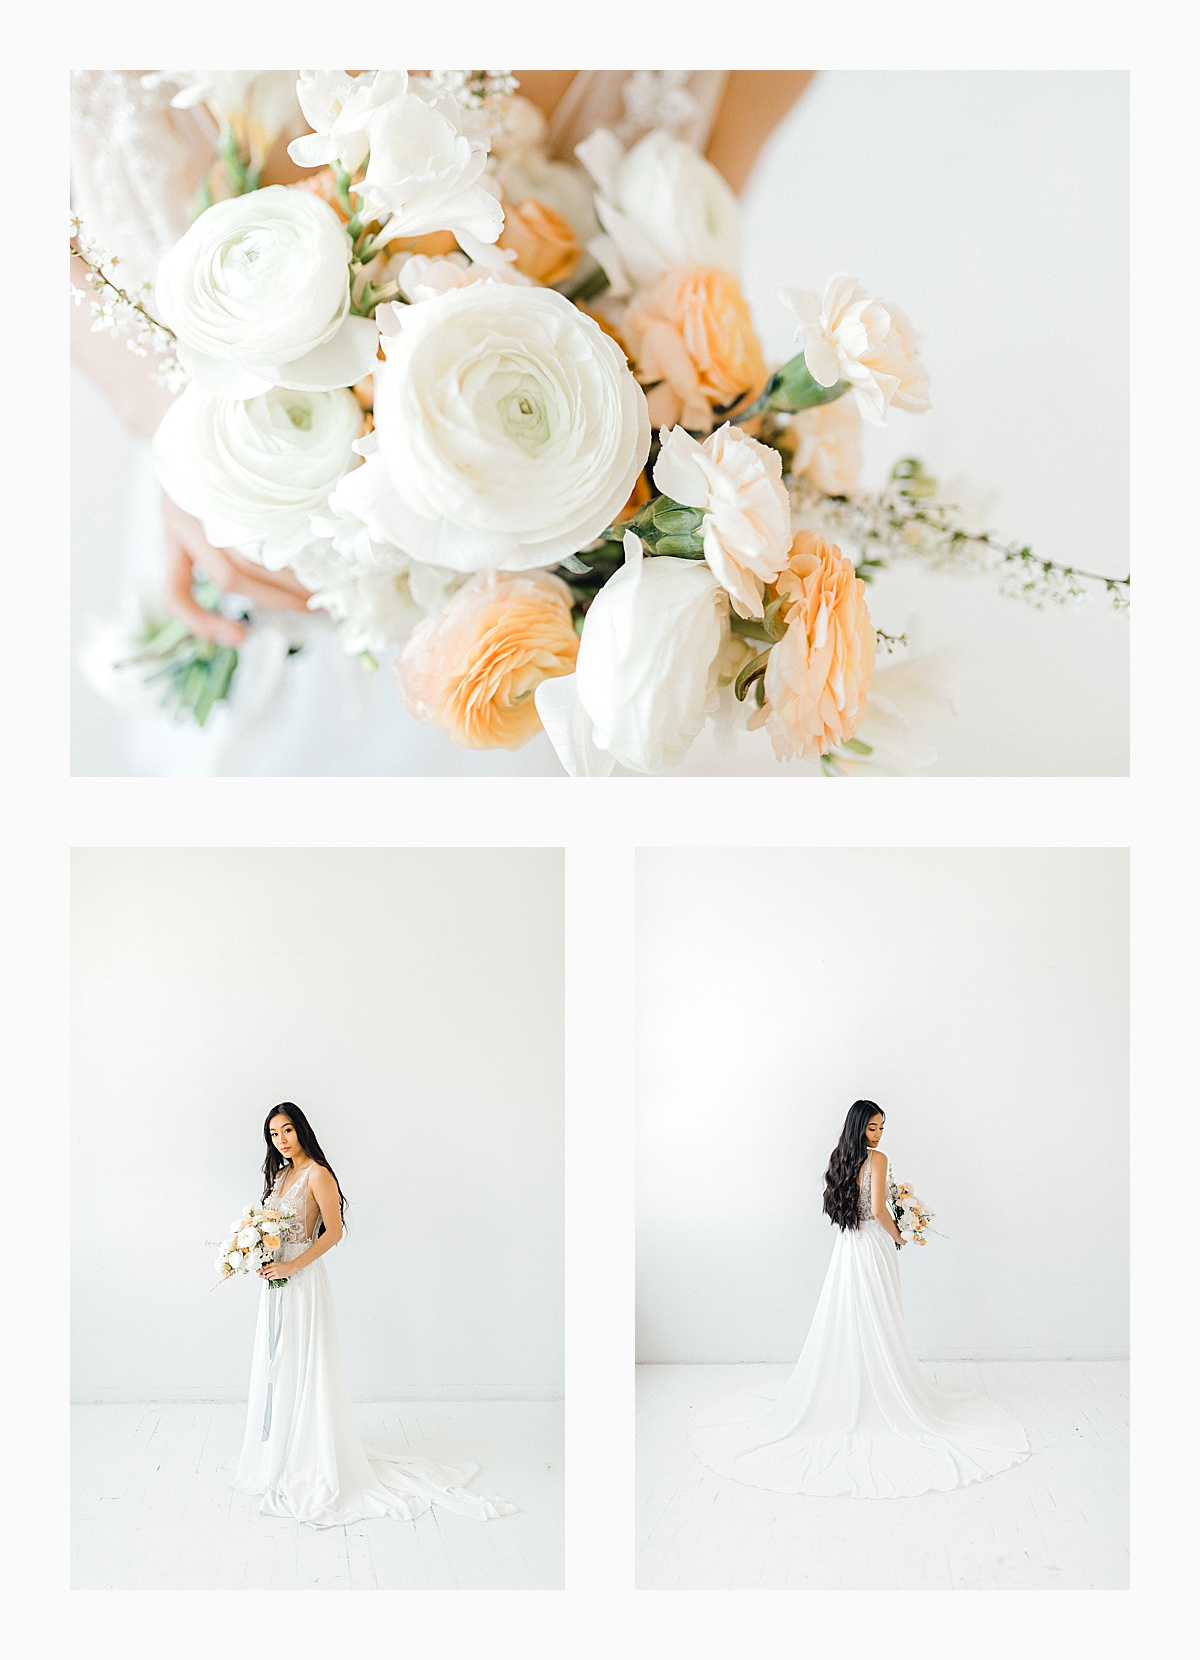 The Bemis Building in downtown Seattle is one of my favorite places to use for photo shoots!  This styled bridal shoot with touches of peach and white was dreamy.  #emmarosecompany #kindredpresets #seattlebride_0012.jpg